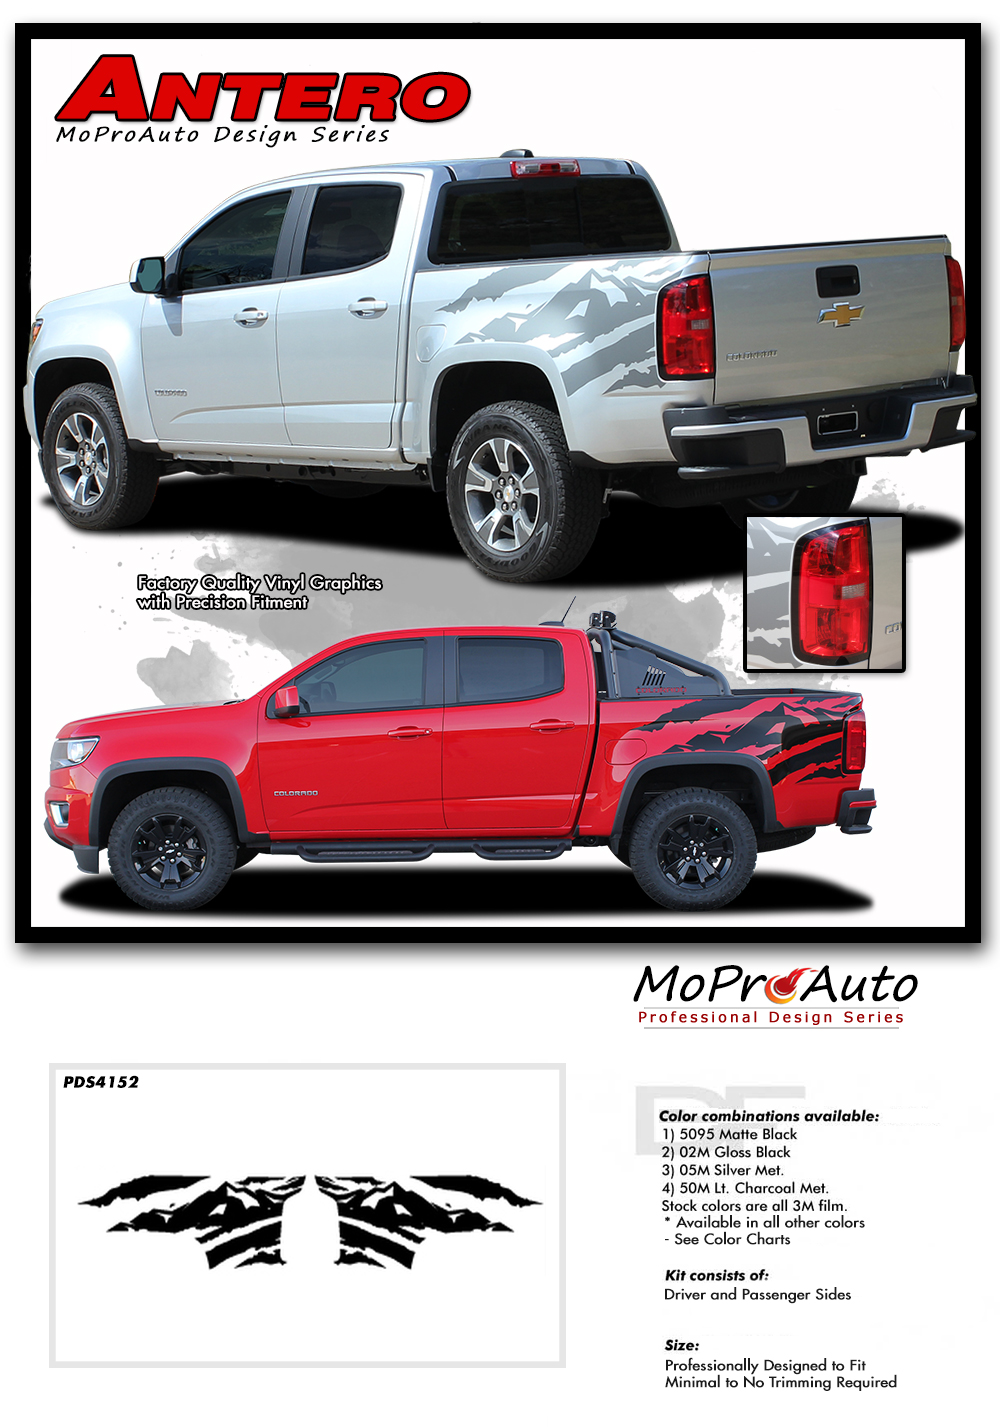 2015 2016 2017 2018 2019 ANTERO CHEVY COLORADO - MoProAuto Pro Design Series Vinyl Graphics, Stripes and Decals Kit